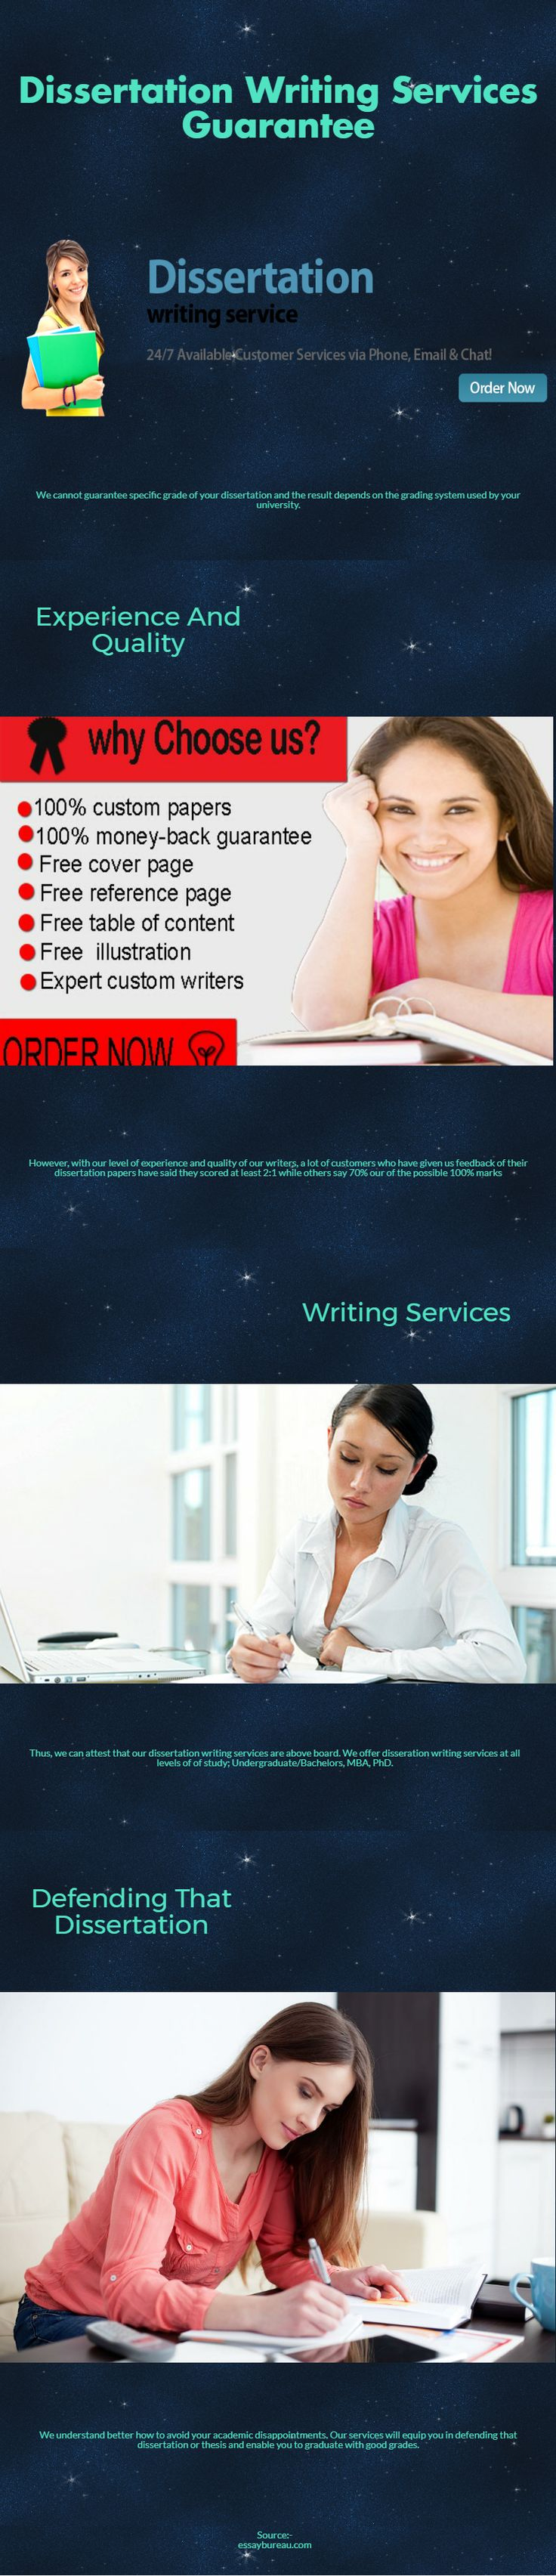 Dissertation Writing Services Guarantee A dissertation is an imperative element of your PhD and therefore, deserves much of your effort and attention. However, it is not just research and mere writing that encompass the vital components. https://essaybureau.com/dissertation-services/ #Nursing_Essays_Writing_service_Australia #Research_Paper_Writing_Service #Assignment_Writing_Services